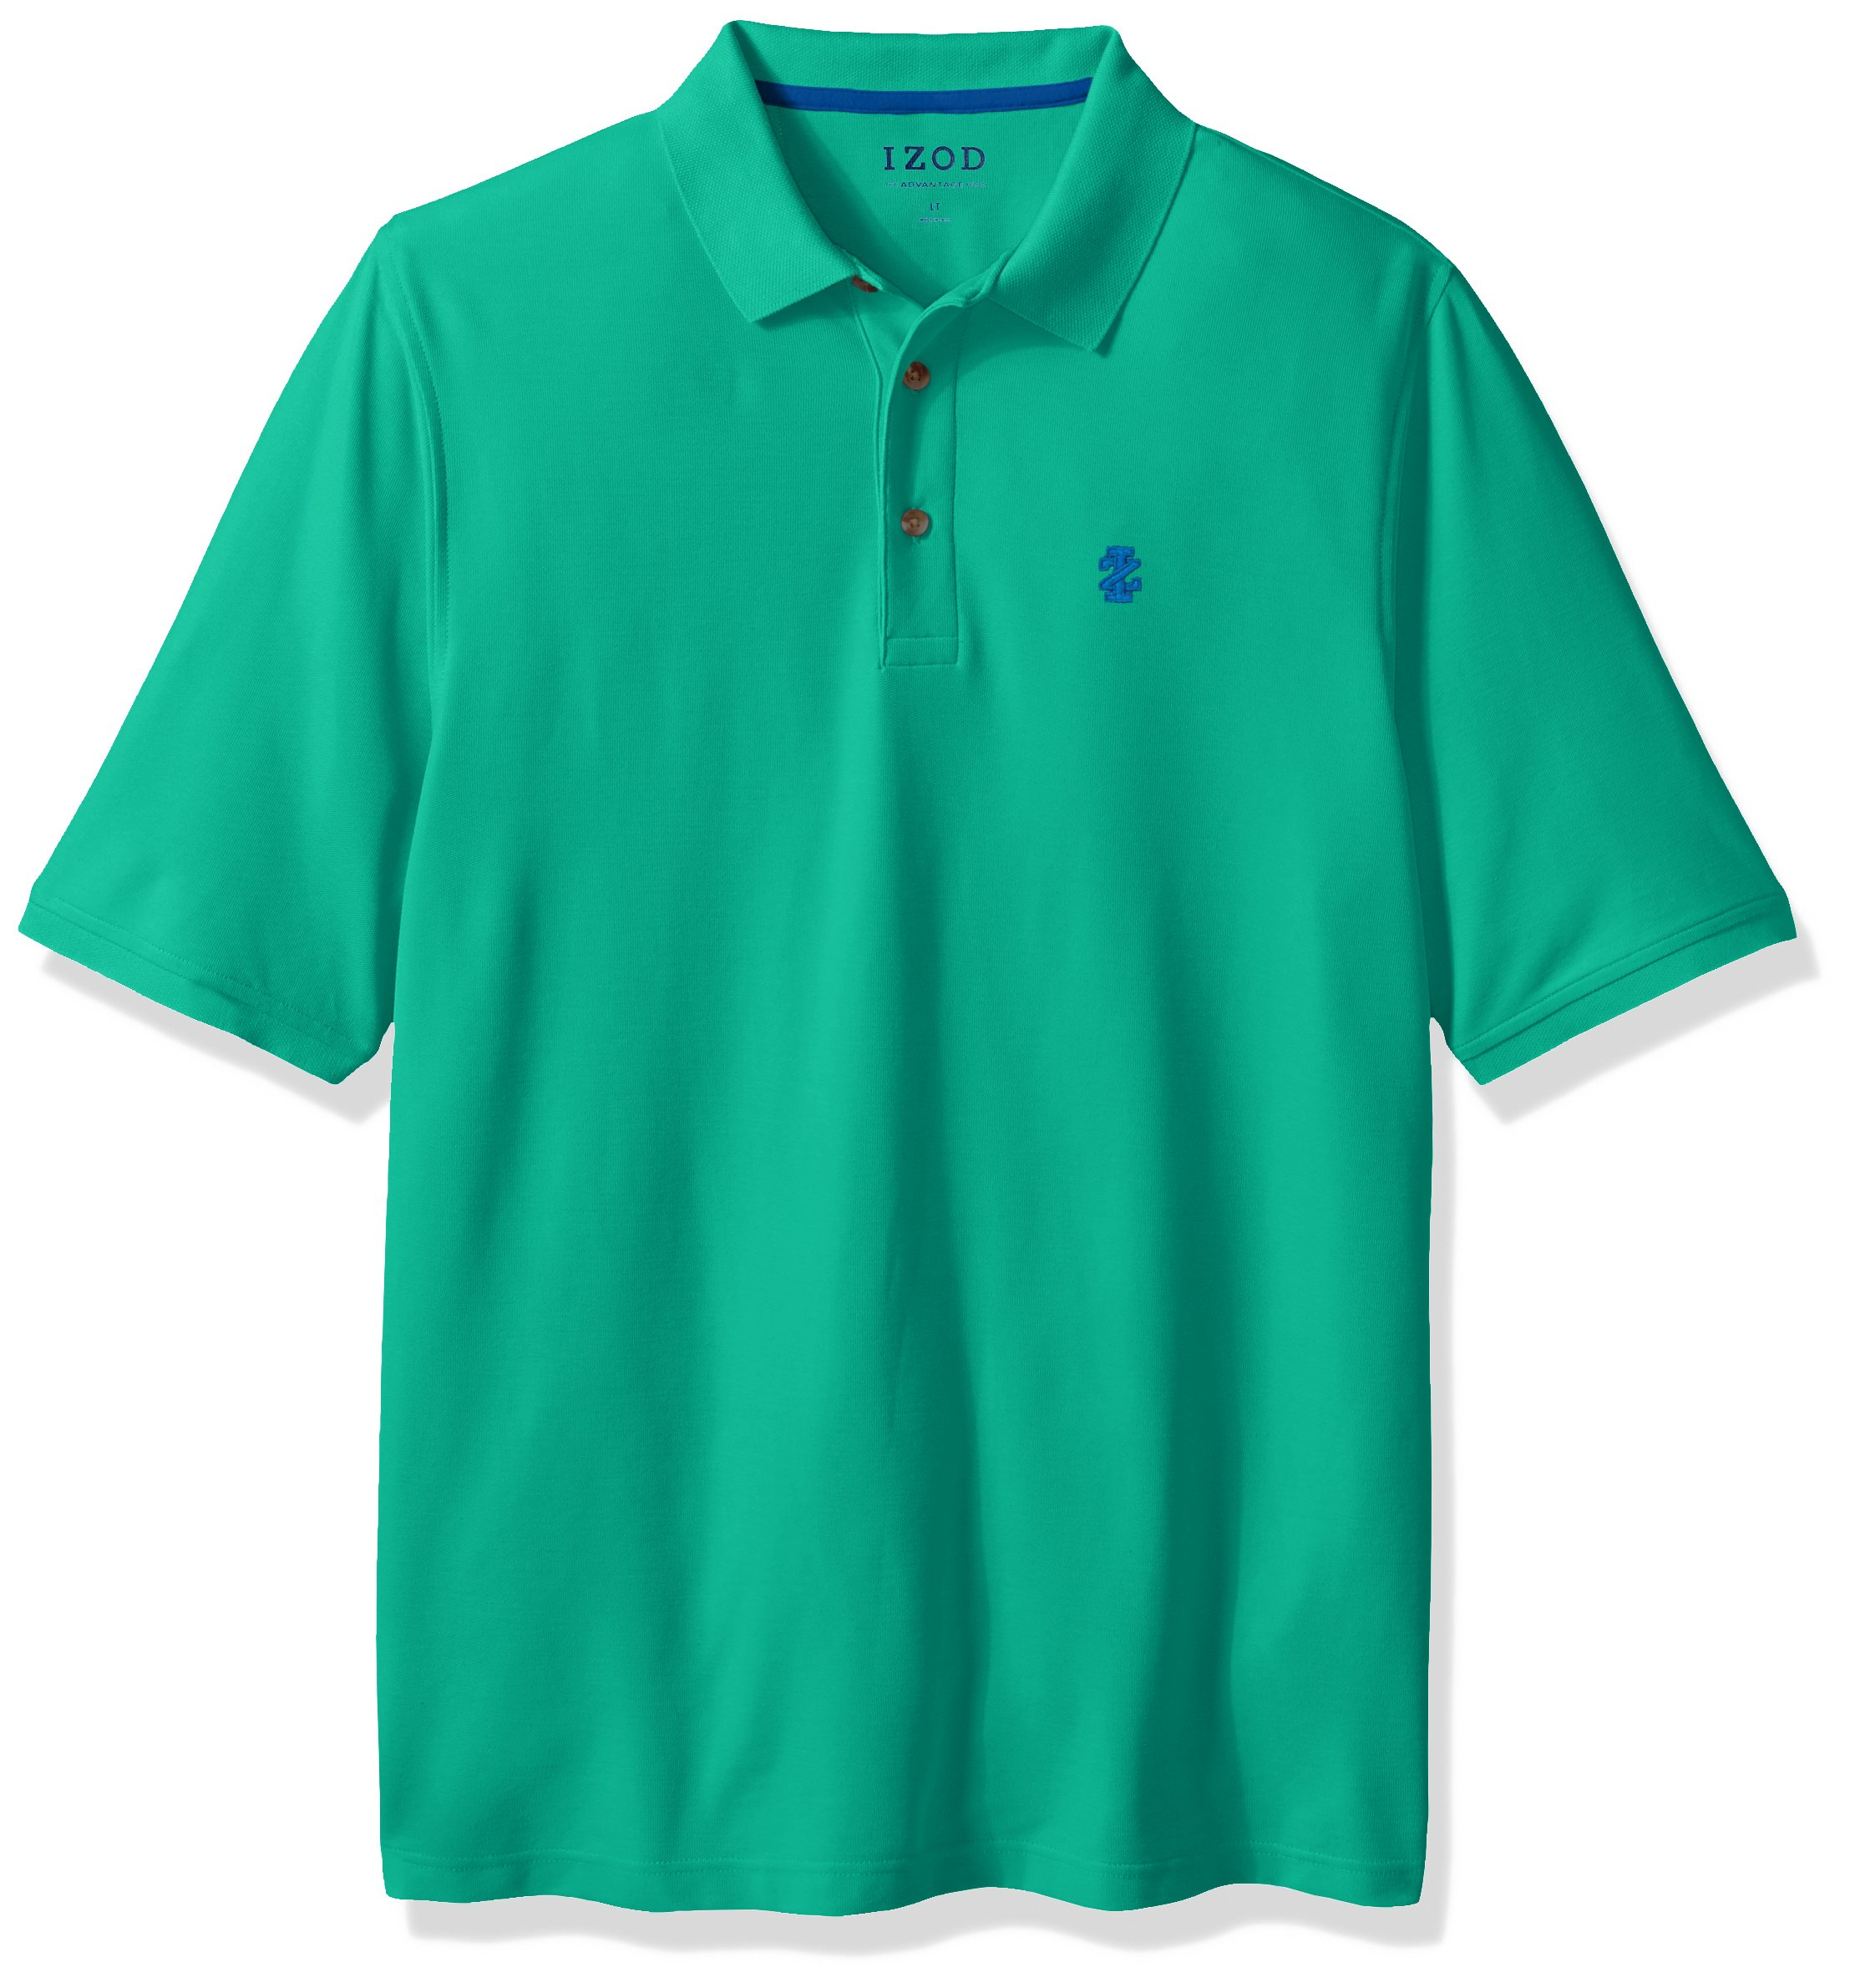 IZOD Men's Big and Tall Advantage Performance Solid Polo, Simply Green, 4X-Large Big